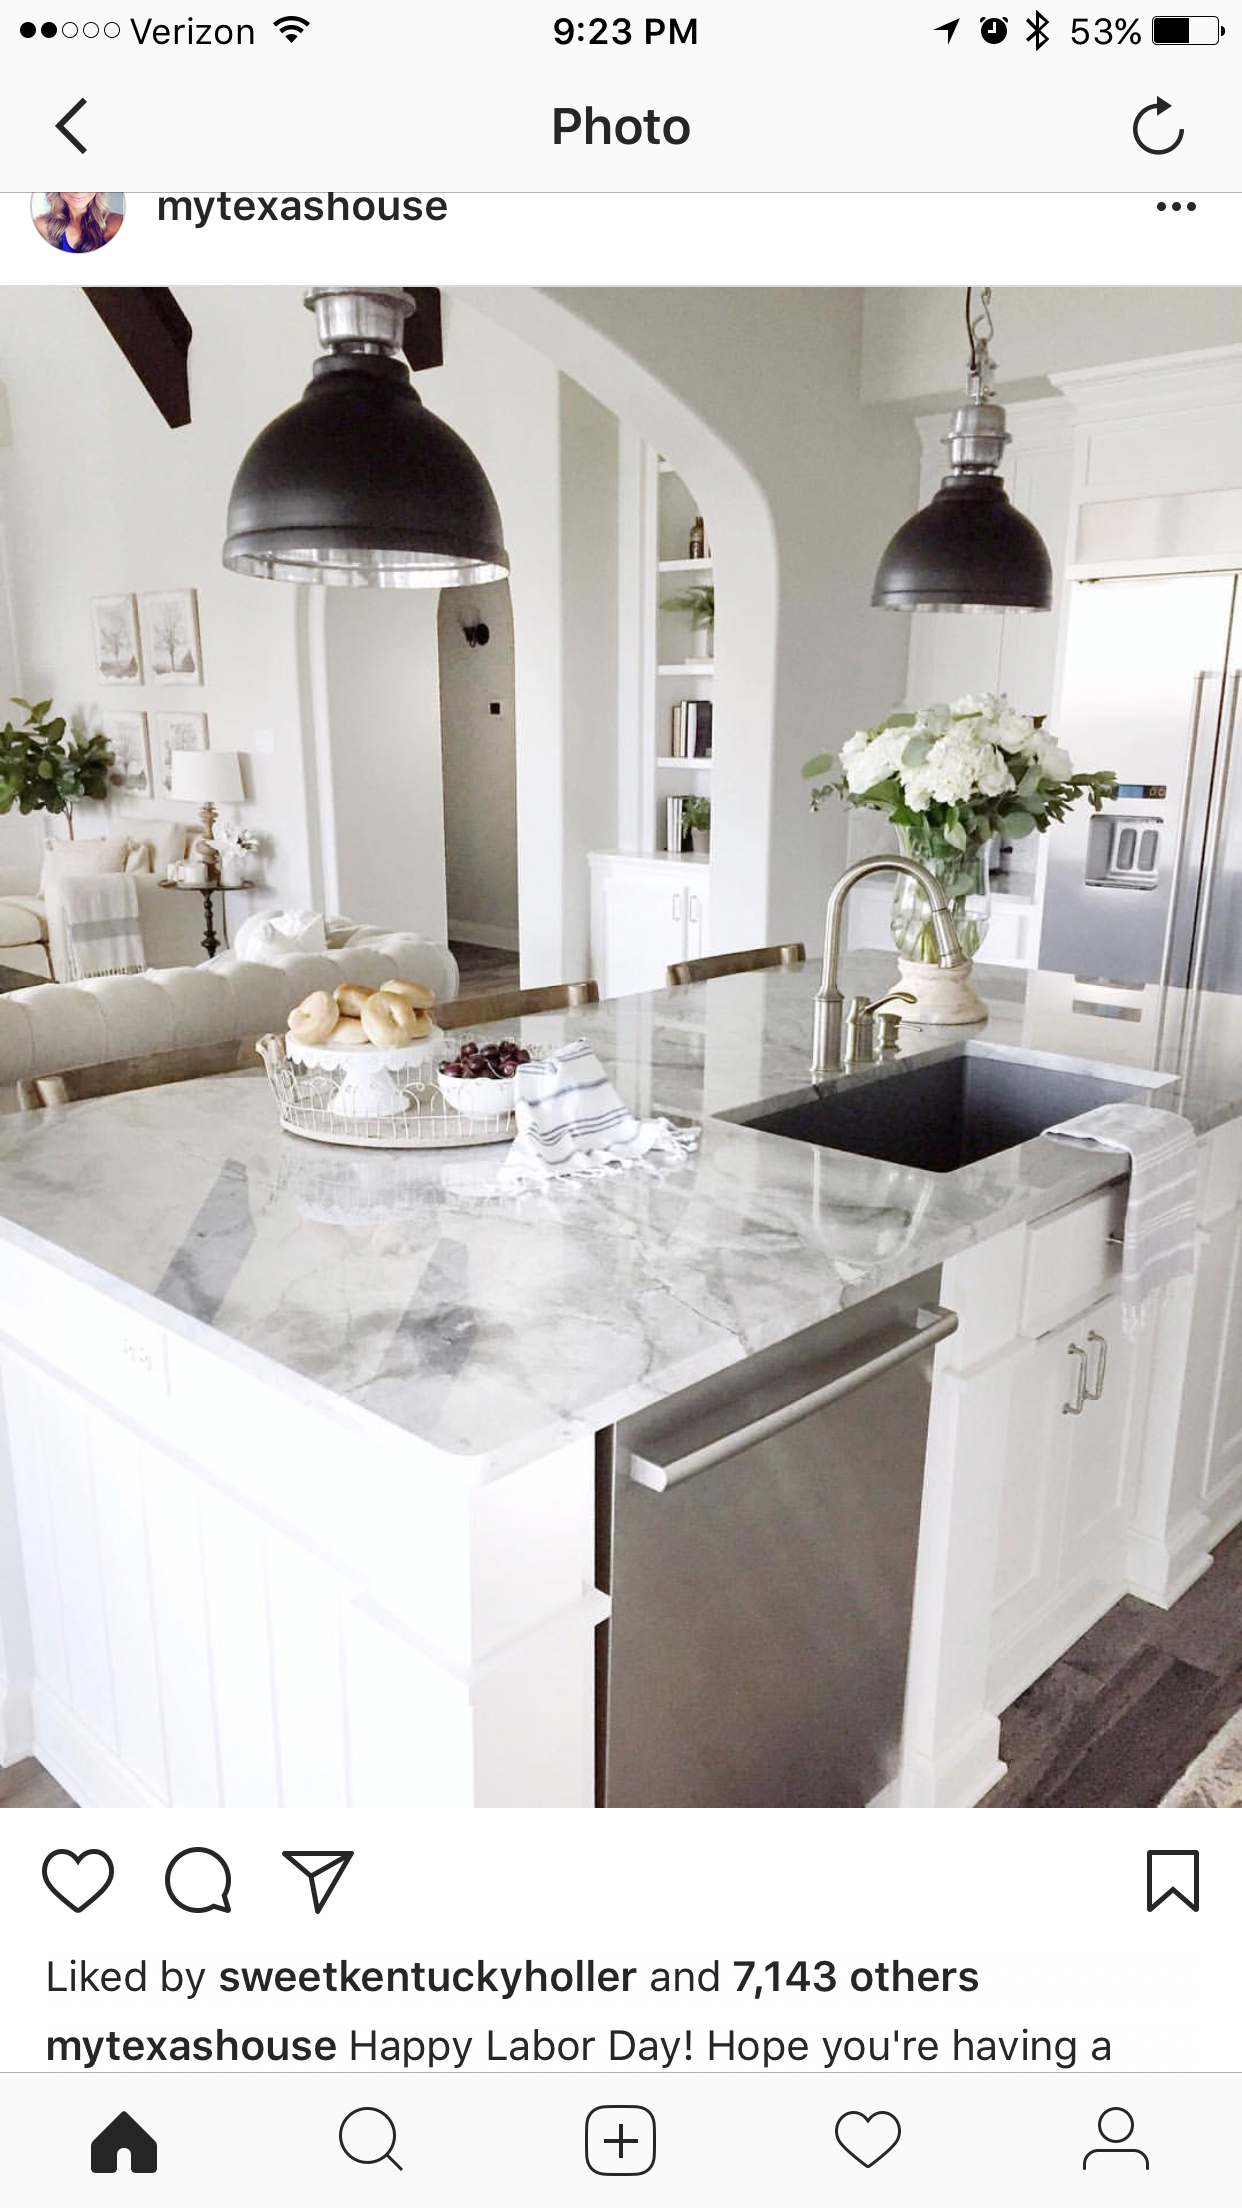 Pin by LK Gregory on Kitchen Countertops | Pinterest | Countertops ...